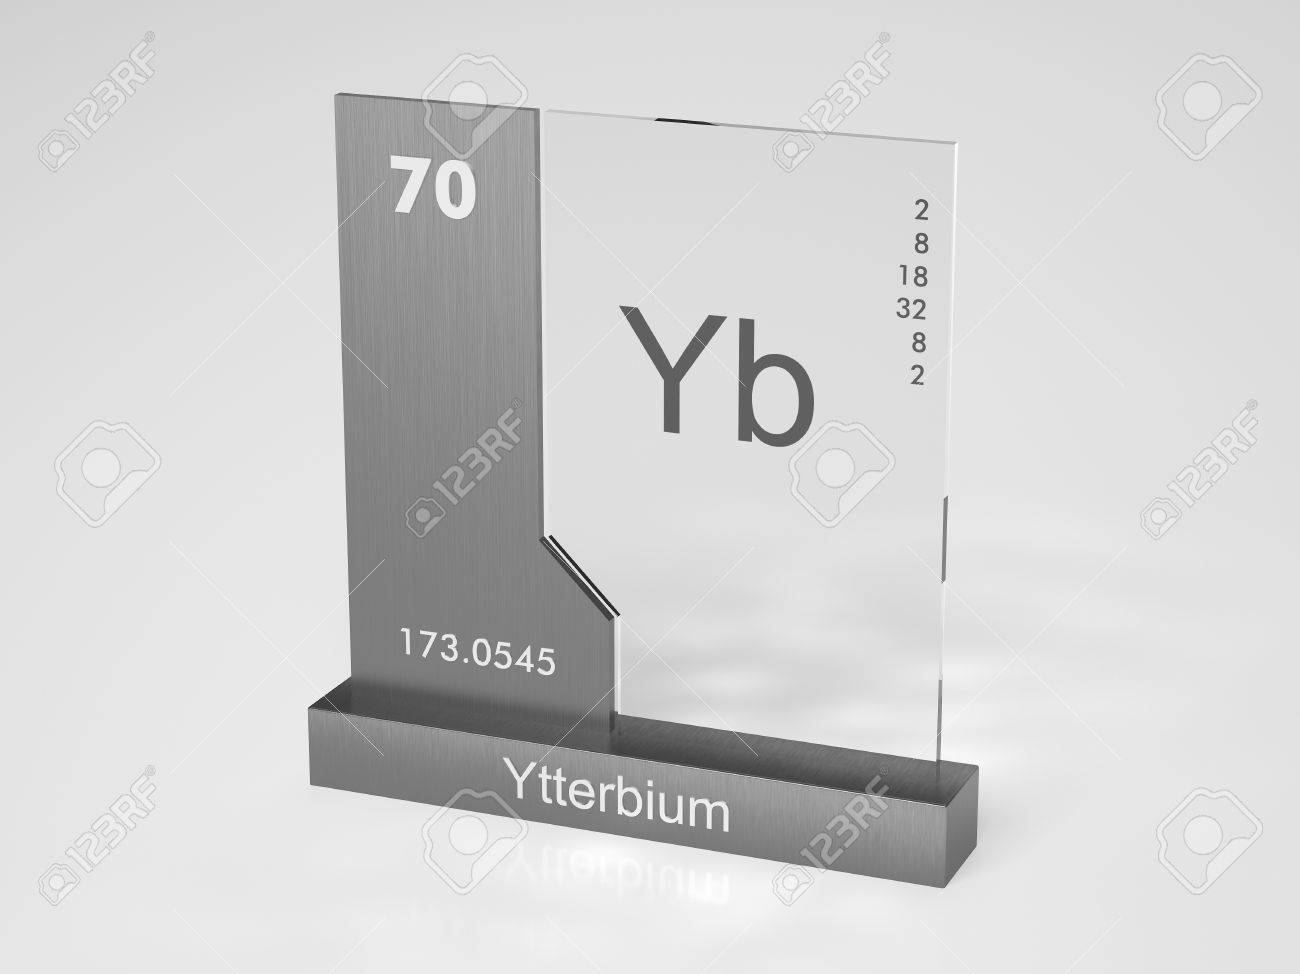 Ytterbium Symbol Yb Chemical Element Of The Periodic Table Stock